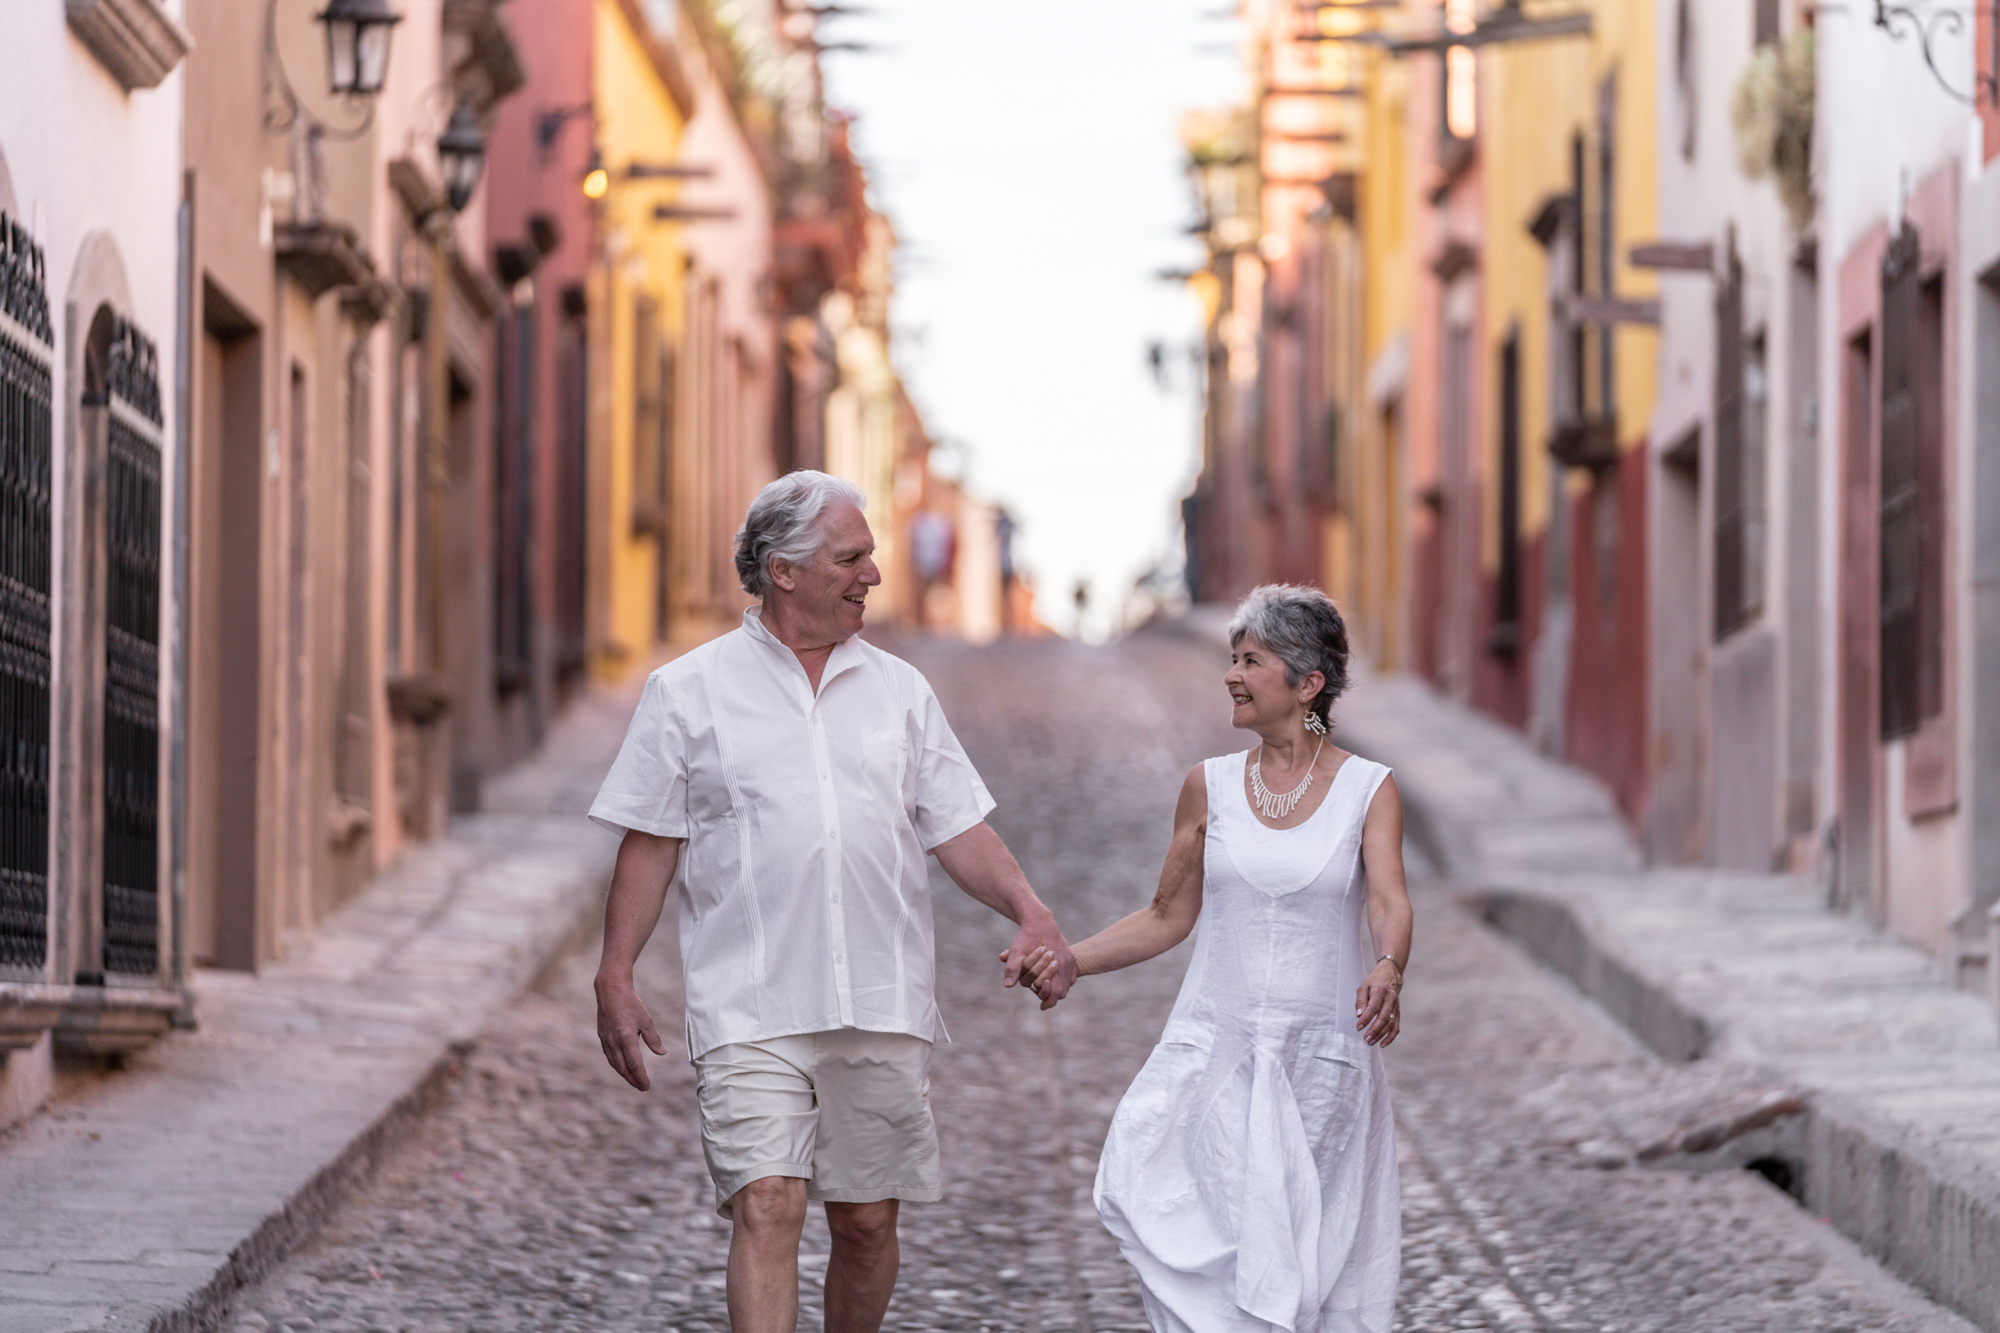 Photoshoot session in San Miguel de Allende with Suzanne and Leo-19.jpg